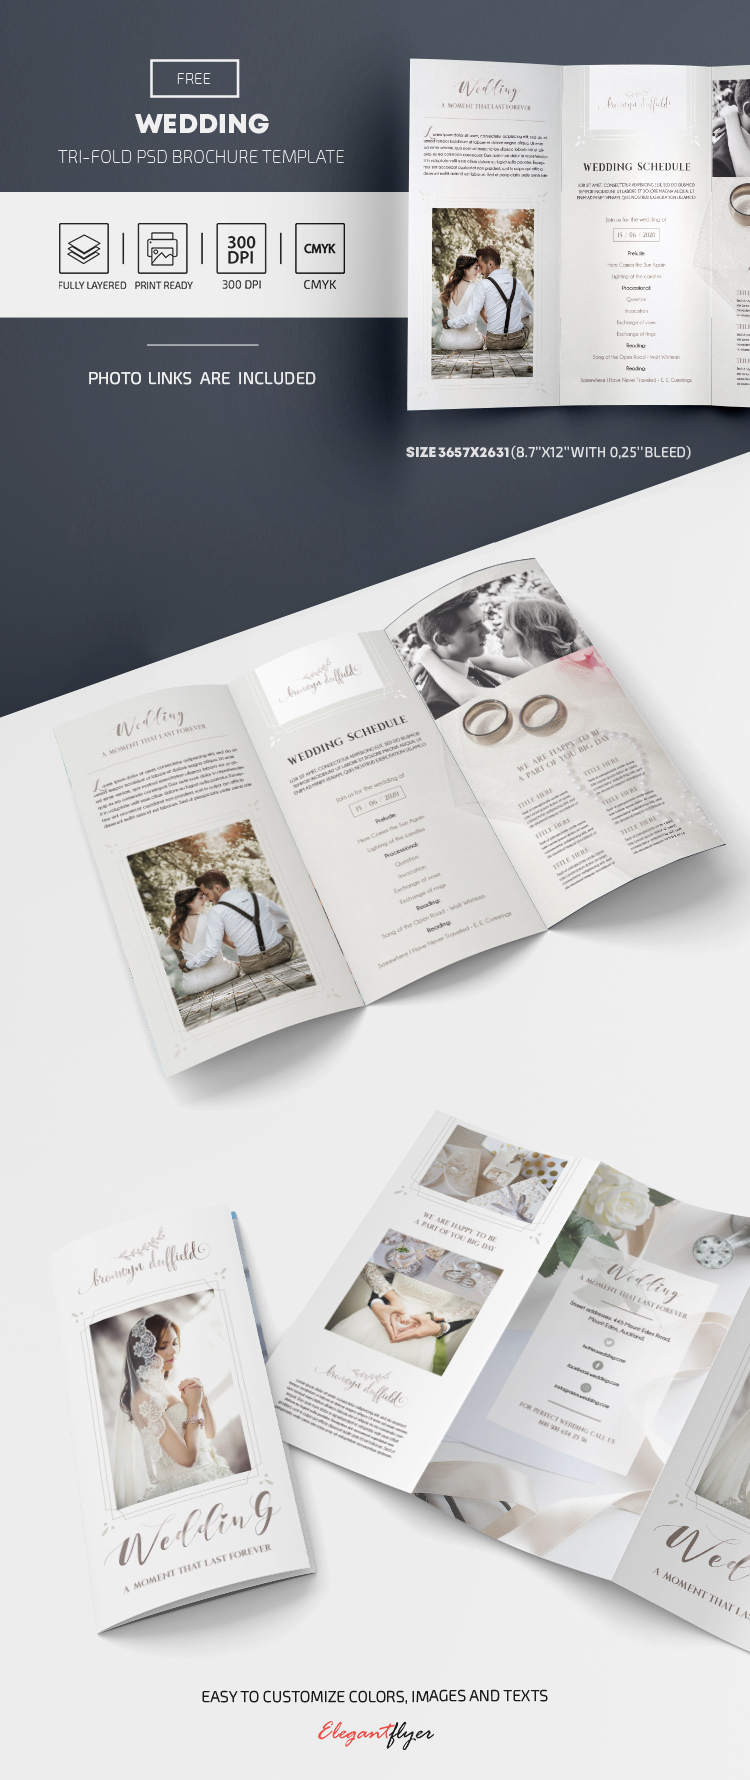 Wedding – Free Tri-Fold Brochure Template